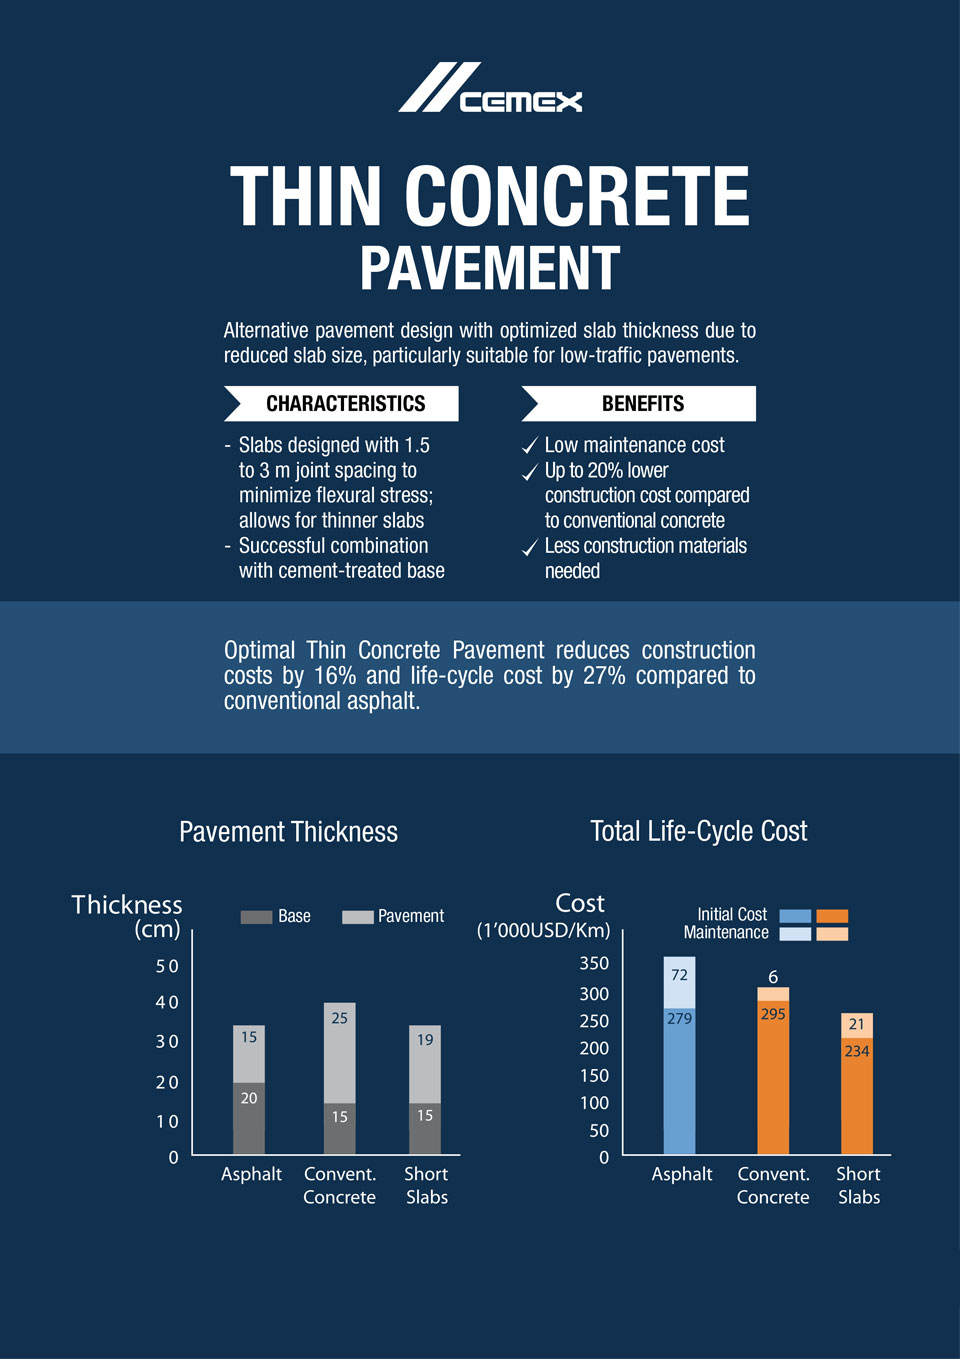 the image shows some characteristics and benefits of thin concrete pavement